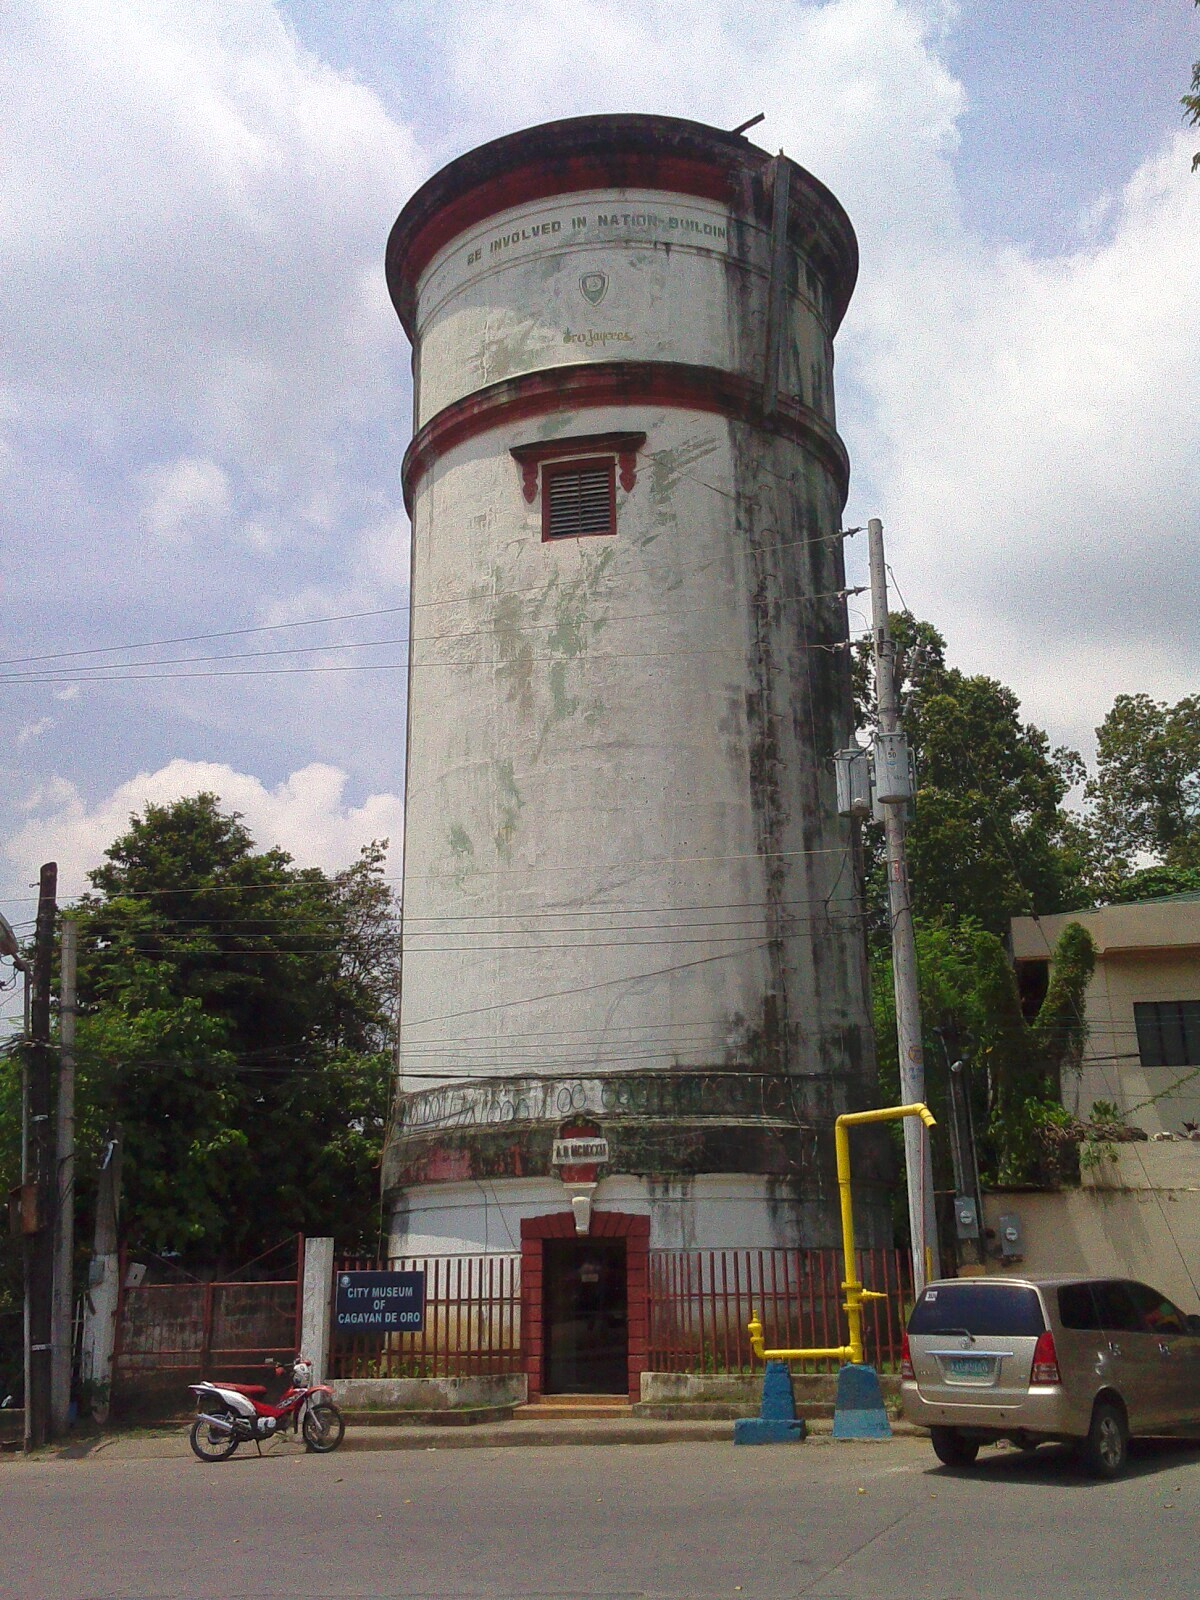 Sights & Sounds of Cagayan de Oro - City Museum and Water Tower Image: M FPoblete